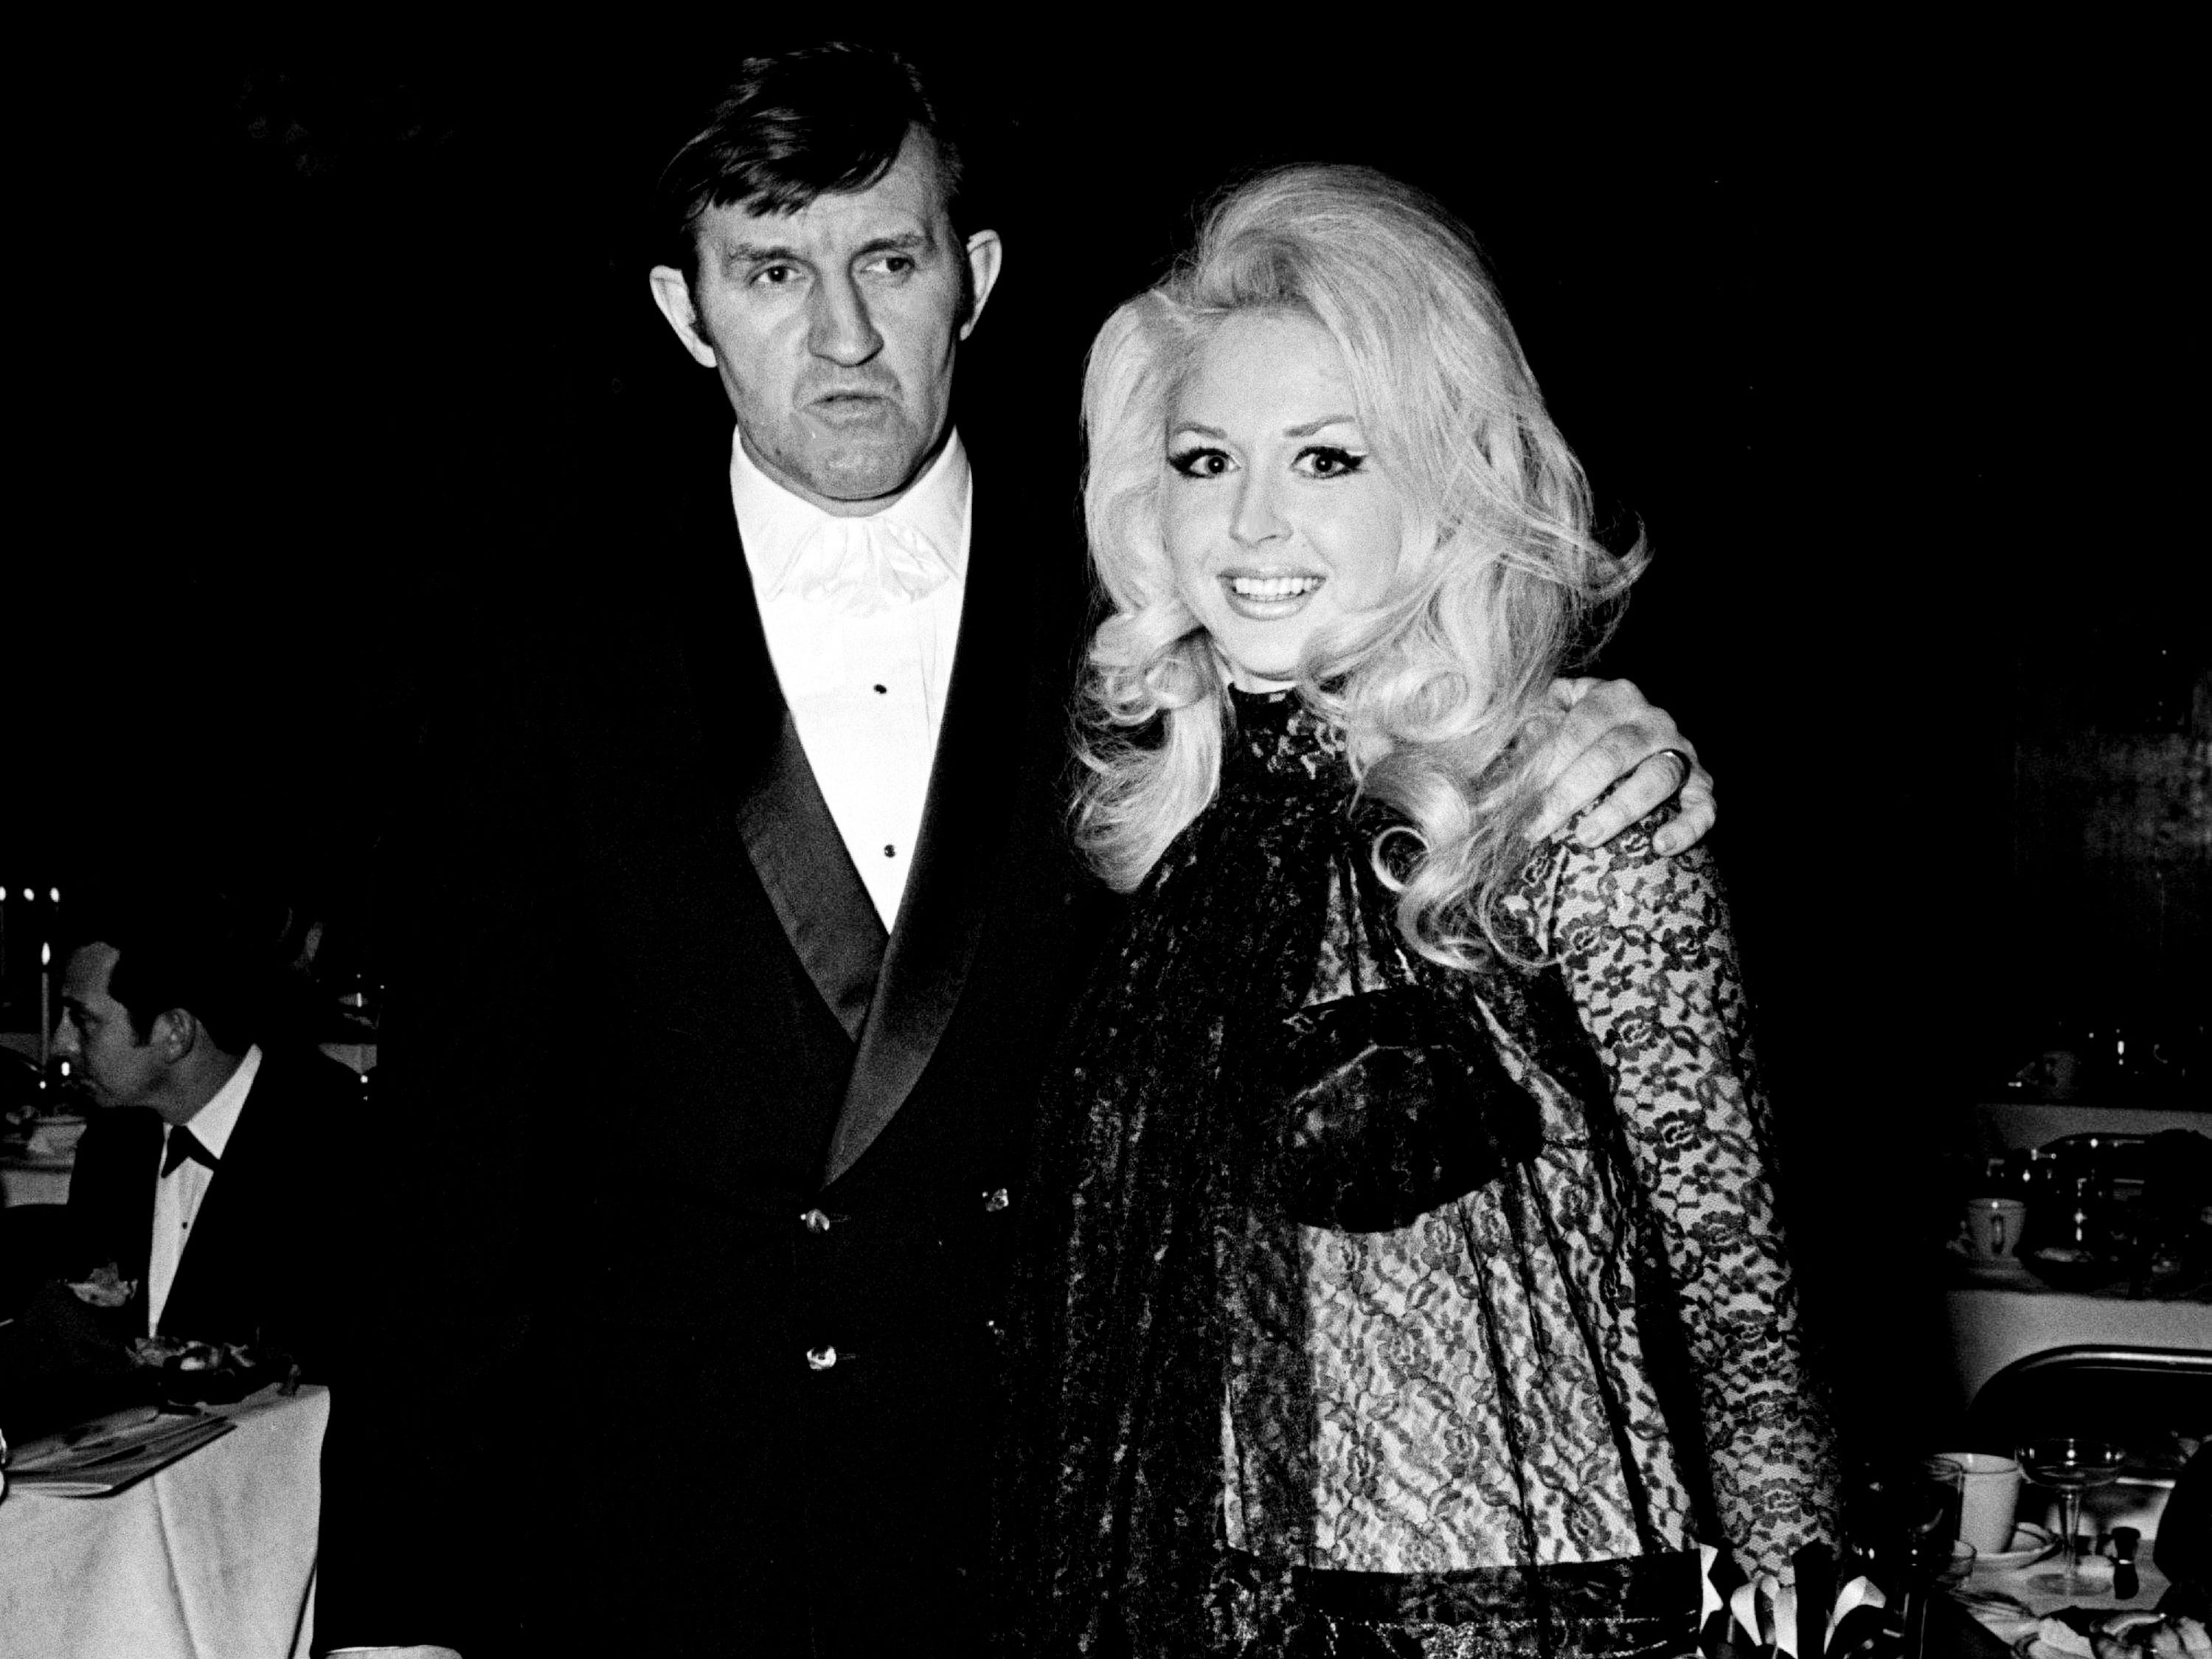 Not all the attraction were on stage, as songstress Demetriss Tapp, wore an eye-catching see-through harem costume. Escorted by her husband, songwriter Bob Tubert, they attended the NARAS annual gala awards celebration for the Grammy awards at the National Guard Armory March 12, 1969.